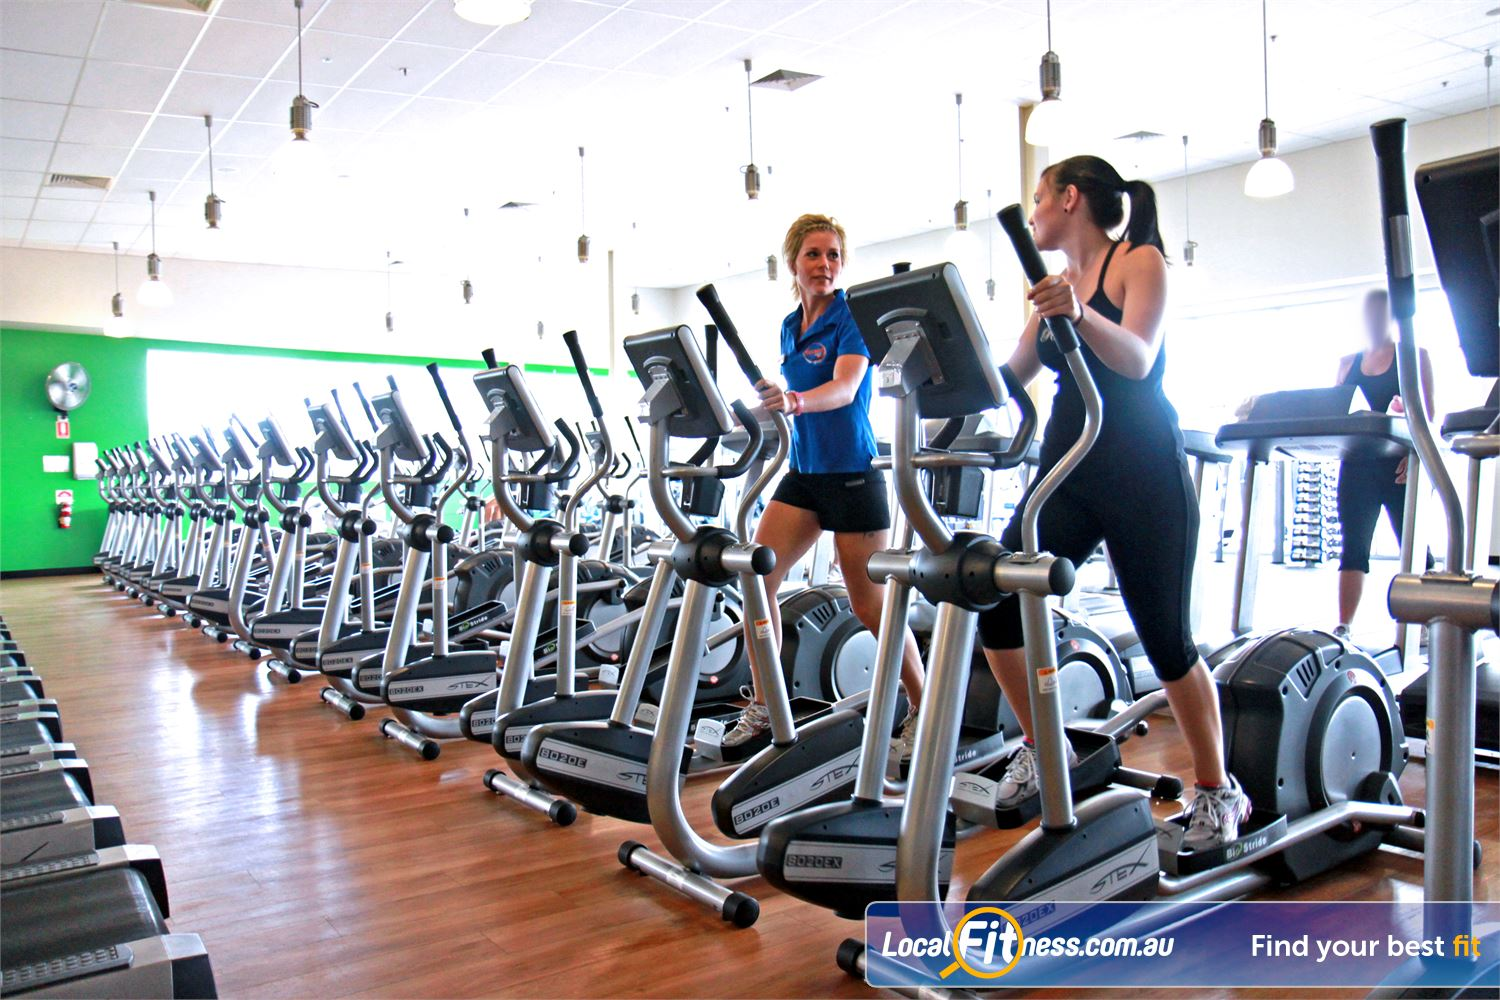 Goodlife Health Clubs Ipswich Goodlife Ipswich gym provides multiple machines so you don't have to wait.